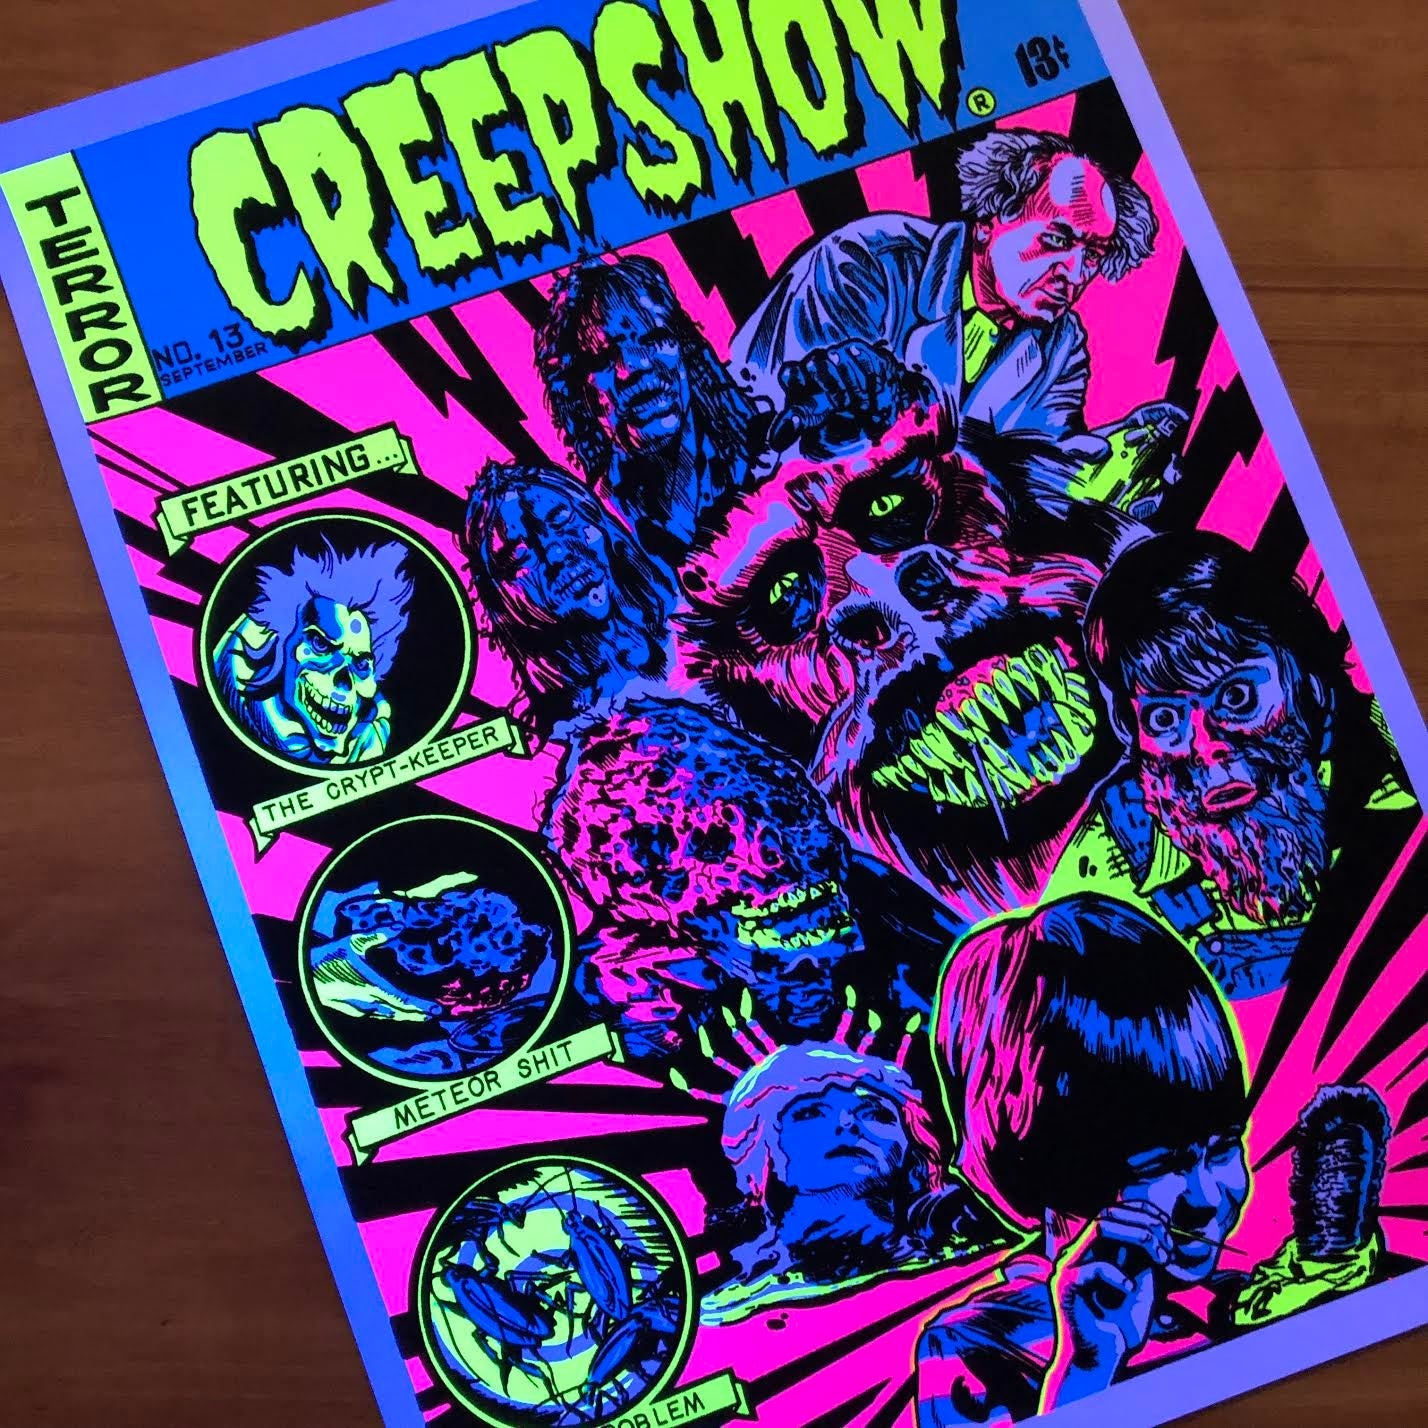 Creepshow Blacklight Poster